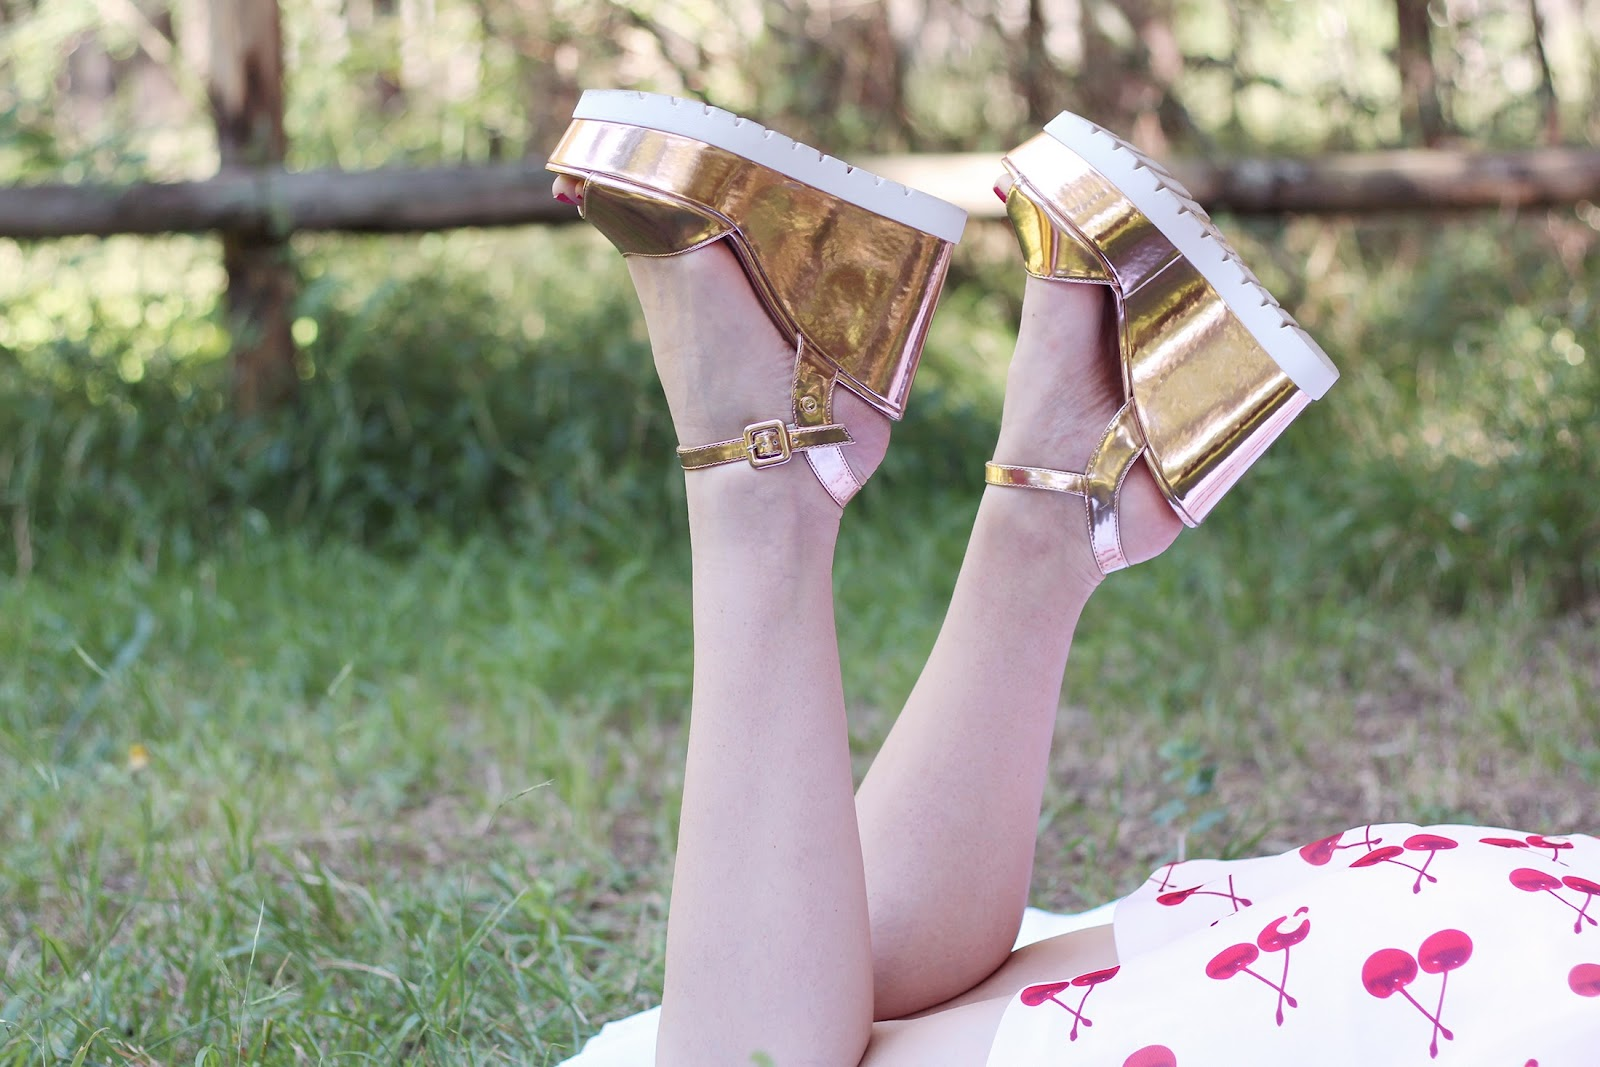 fashion style blogger outfit ootd italian girl italy trend vogue glamour pescara vestito cherry ciliegie chic wish summer estate zeppe wedge shoes metallic rose gold Tata borsa particolare cestino pic nic bag Accessorize